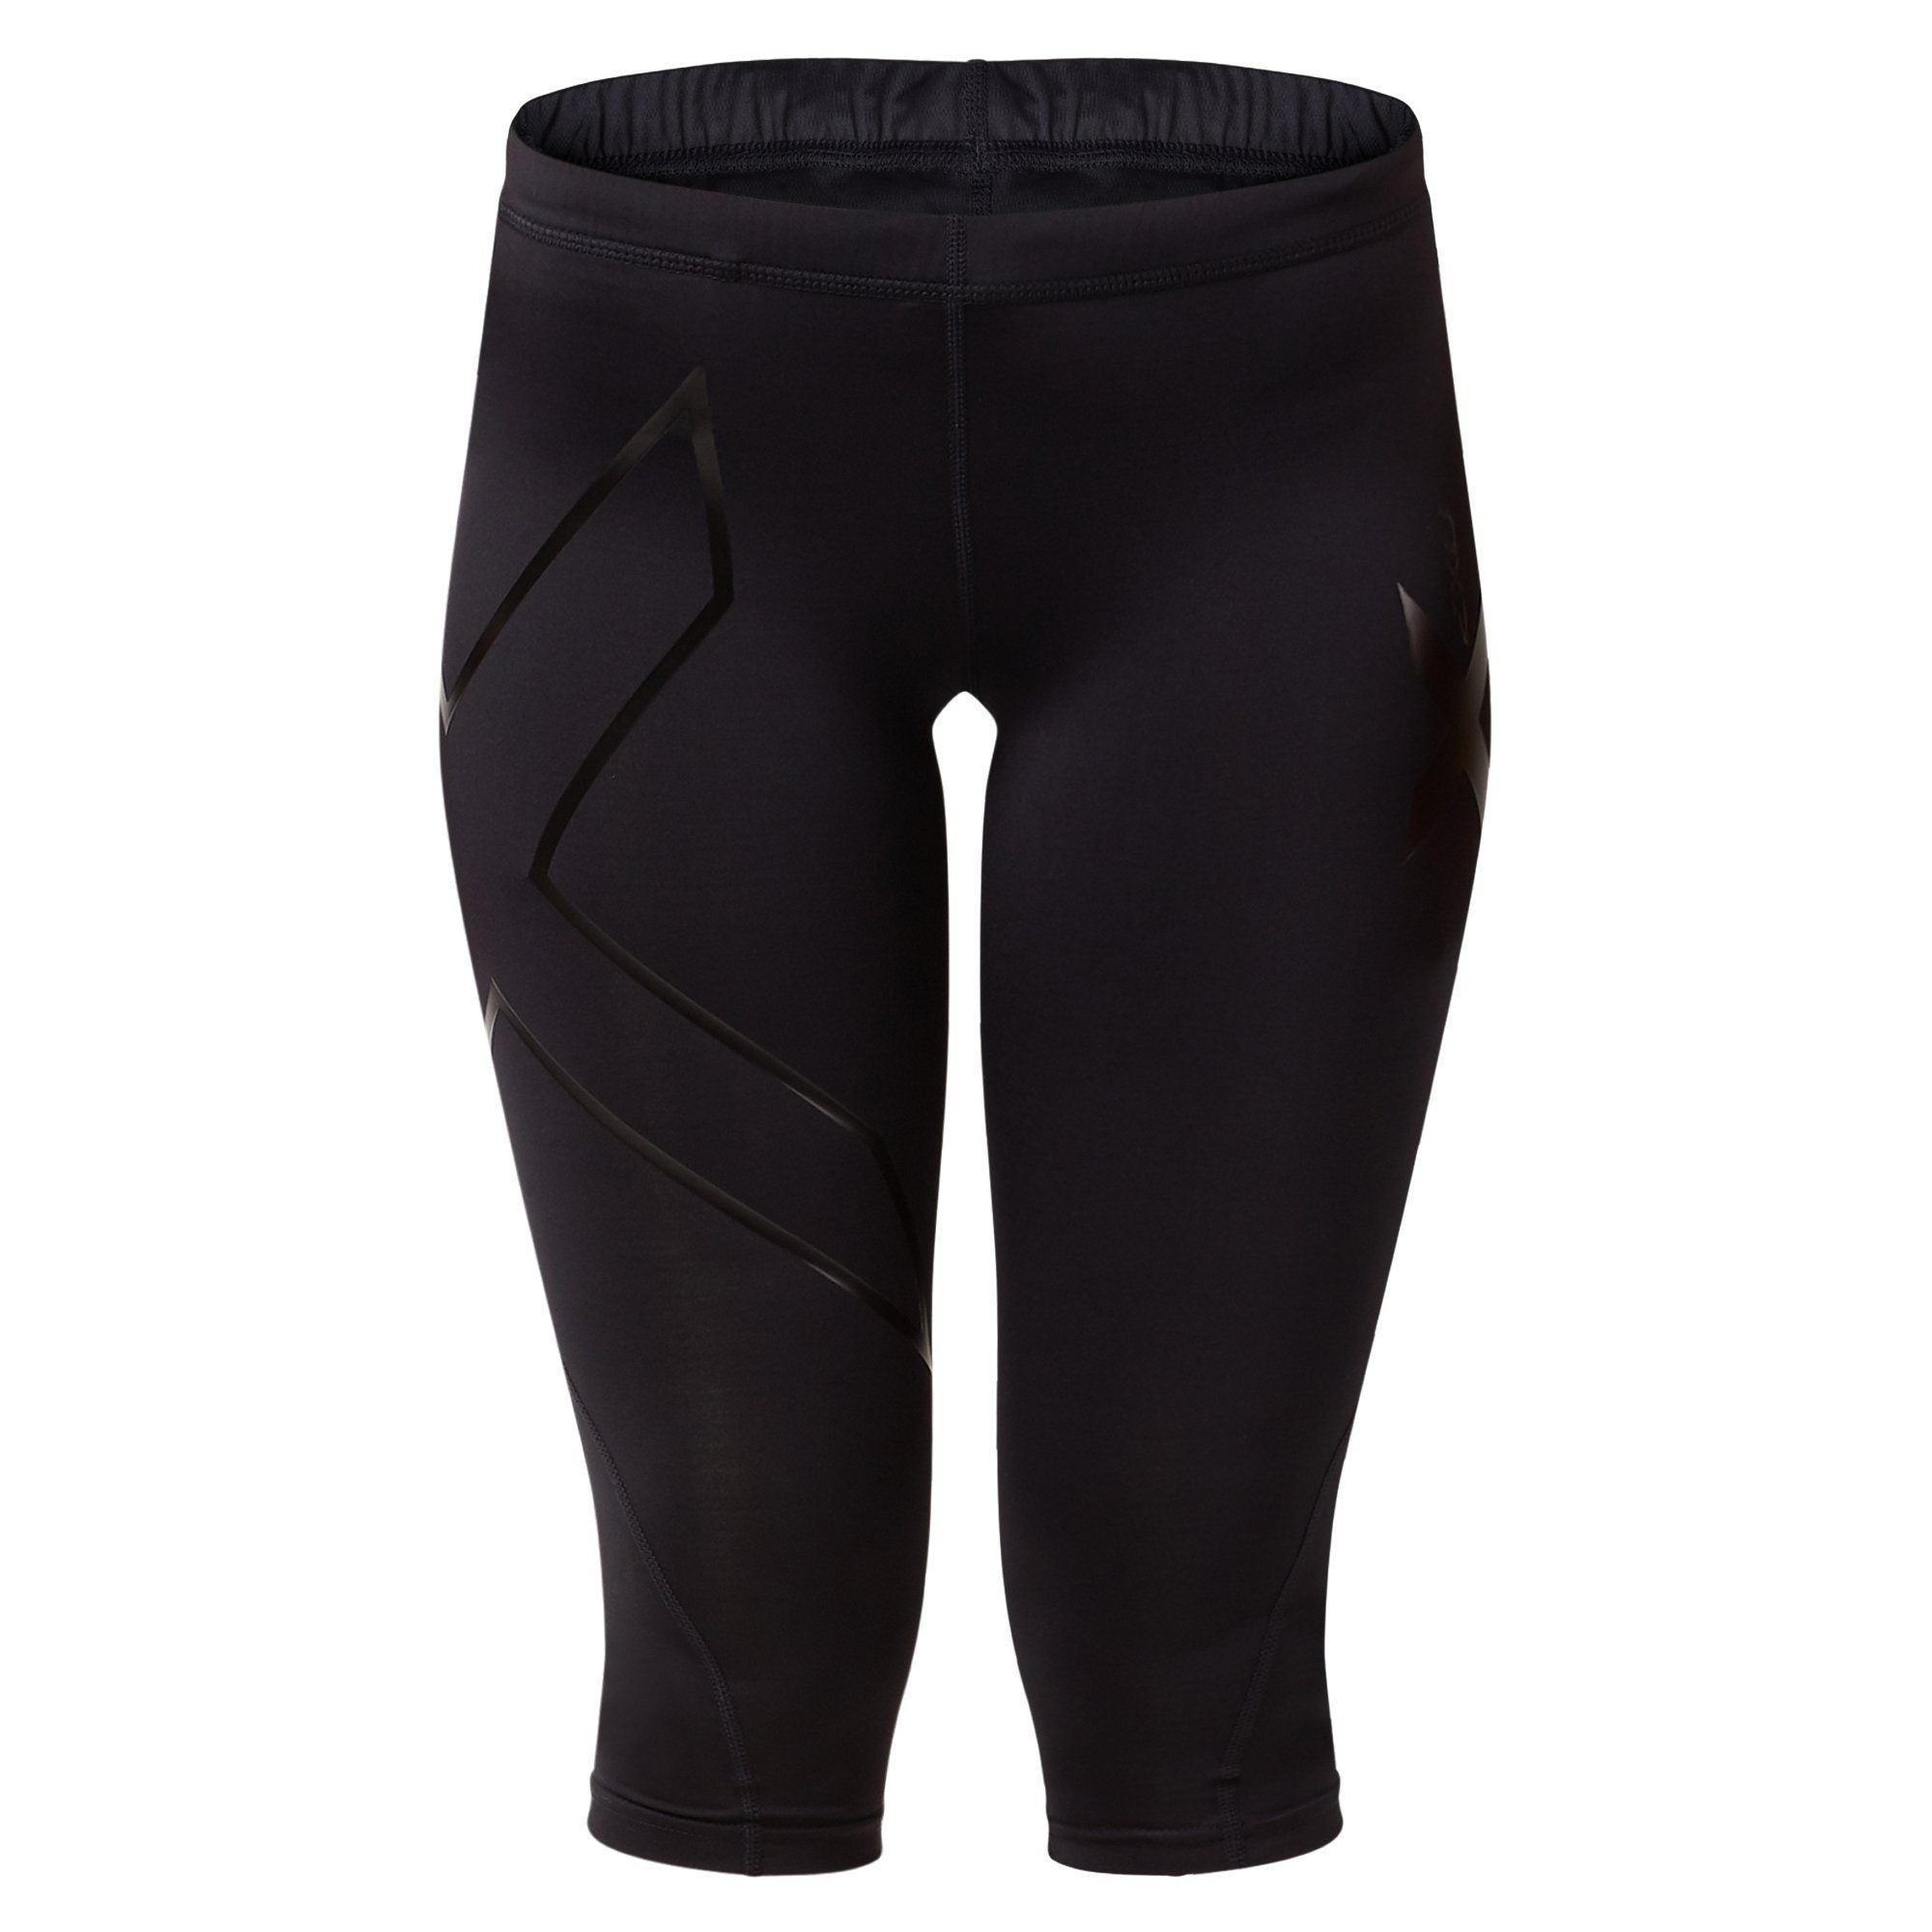 2XU Women's 3/4 Compression Tights G1 - BLK/NRO Apparel 2XU